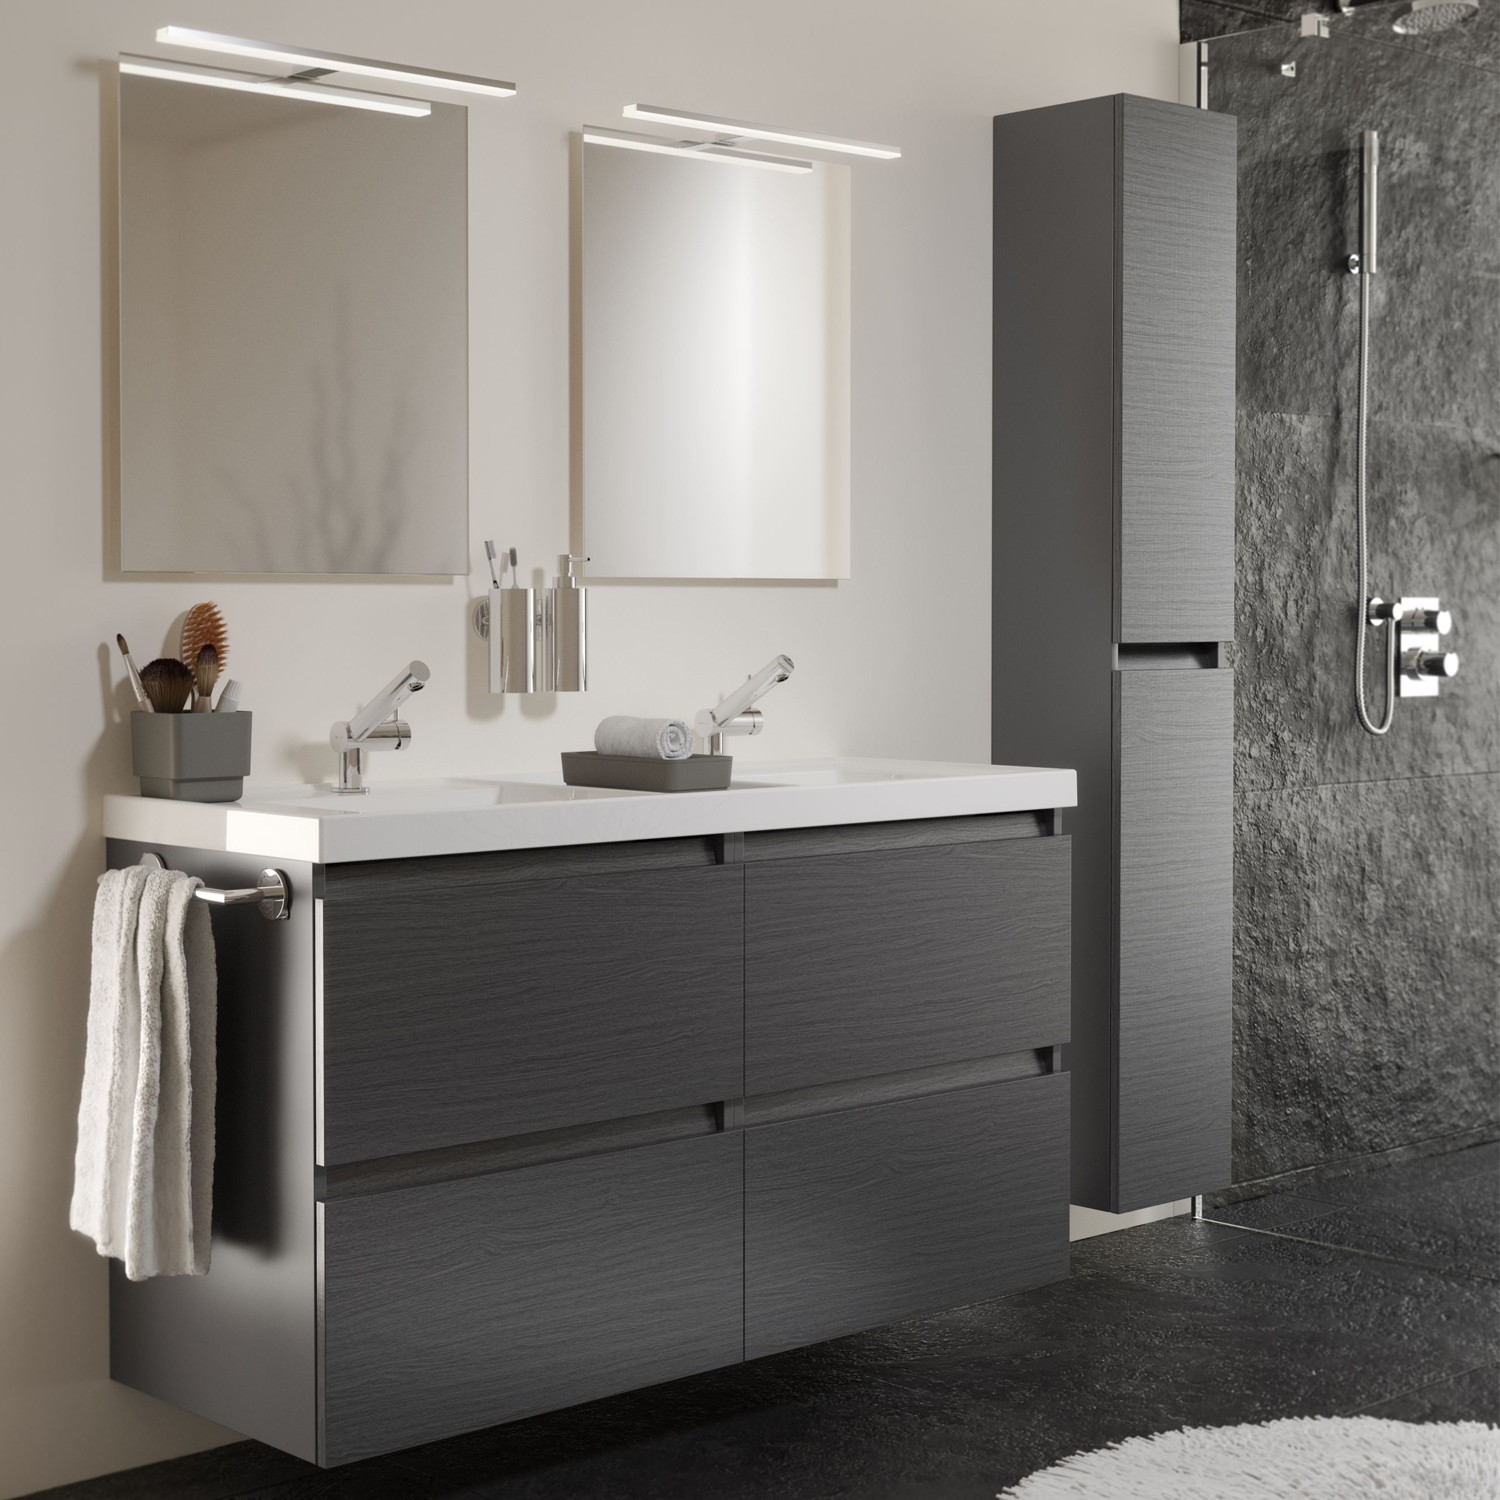 24 Inch Bathroom Vanity Gray